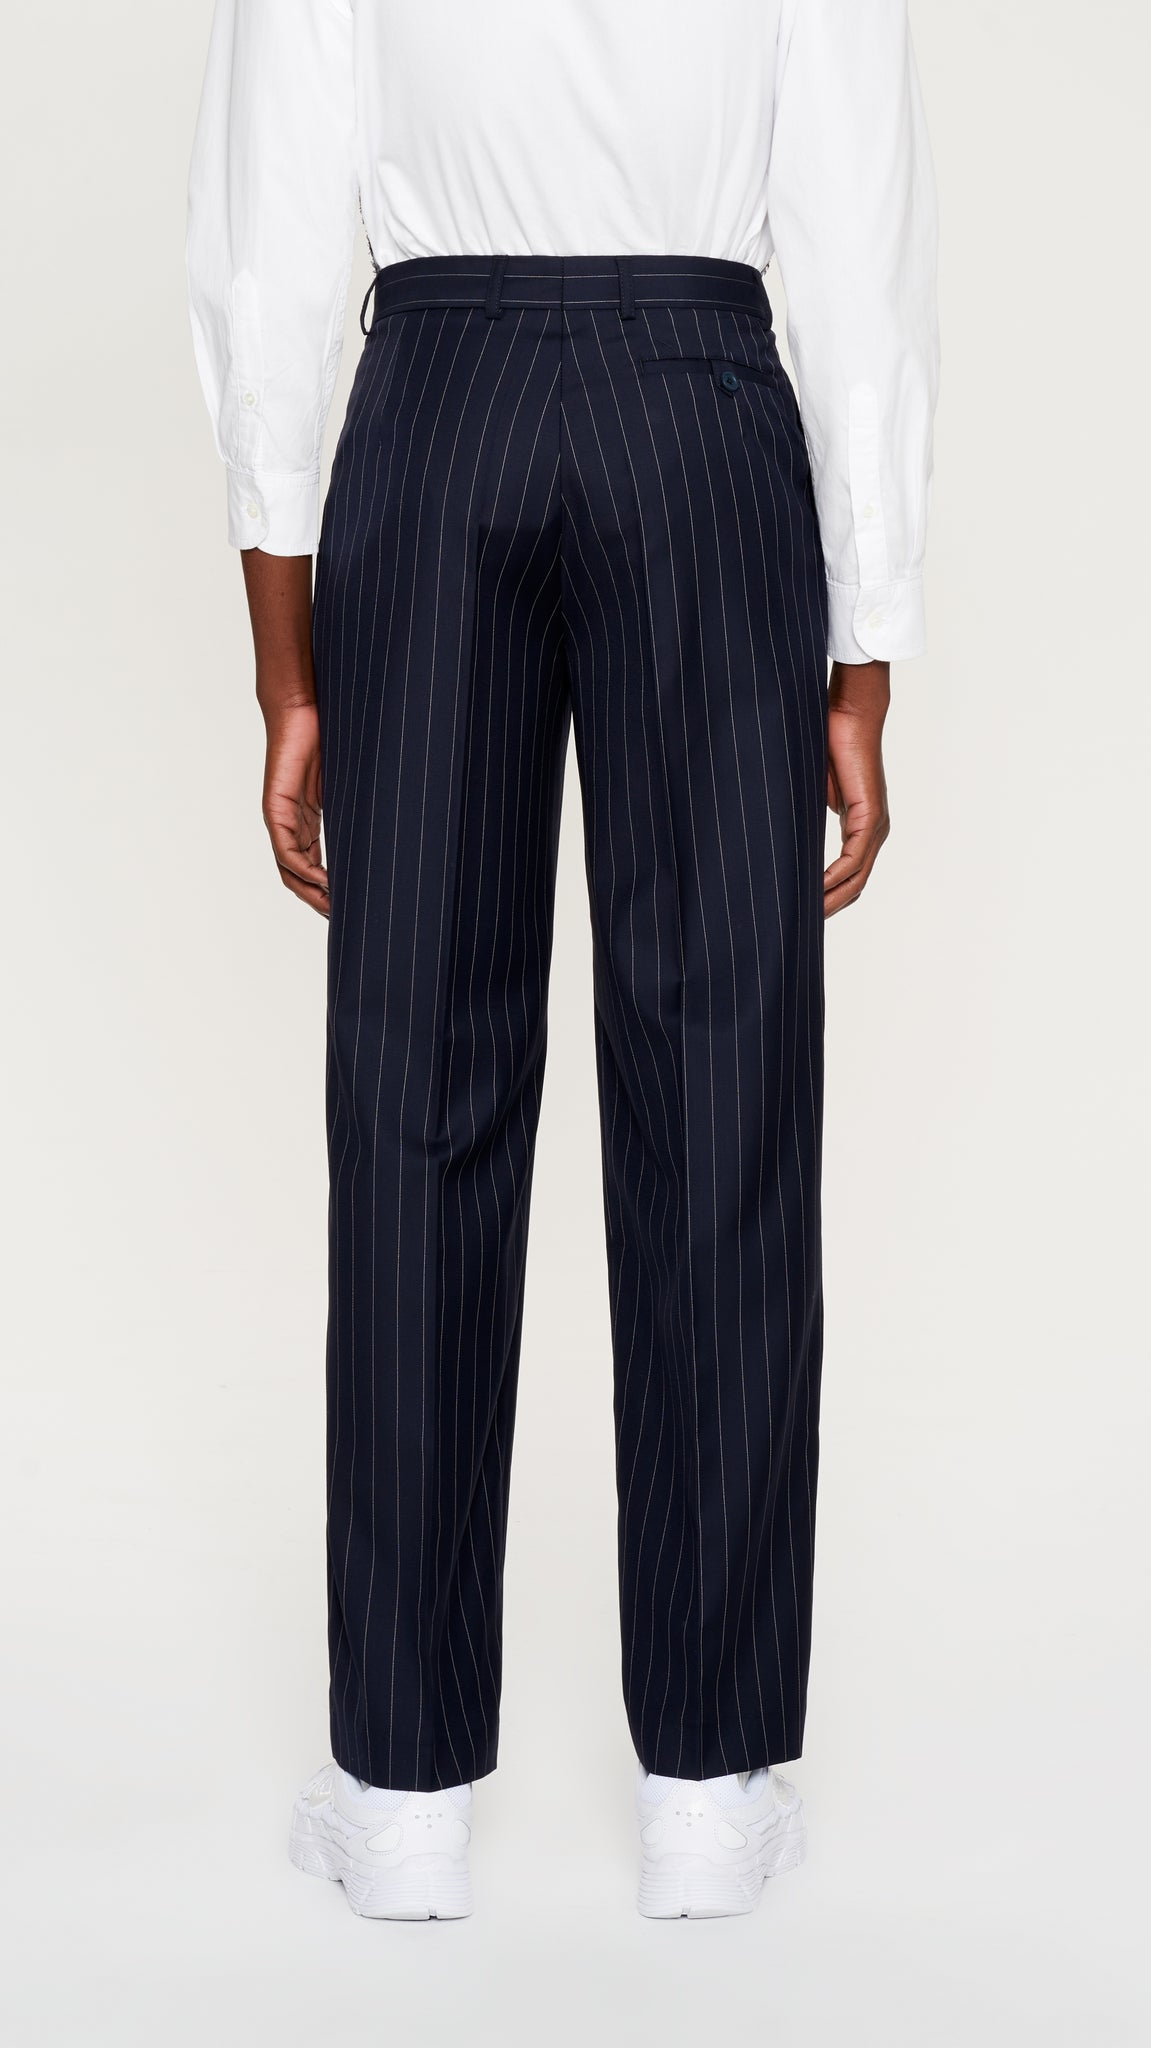 Navy striped wool pants